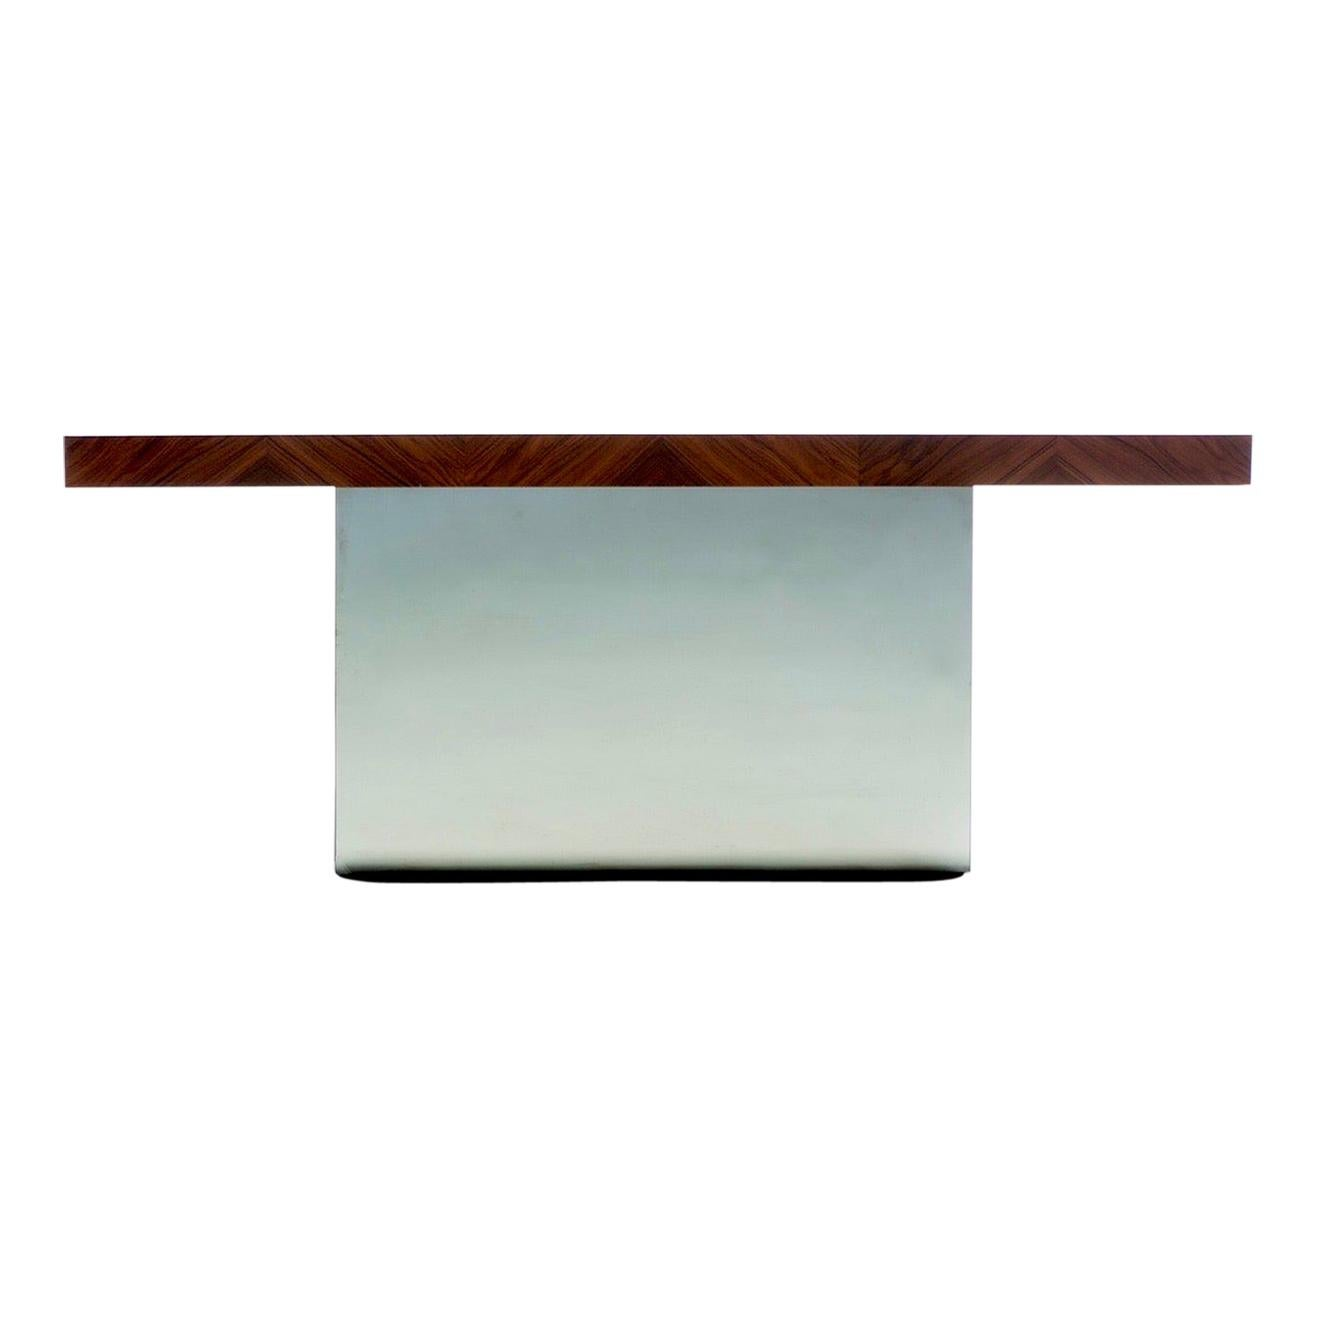 Milo Baughman for Thayer Coggin Rosewood and Mirror Chrome Console, c. 1970s